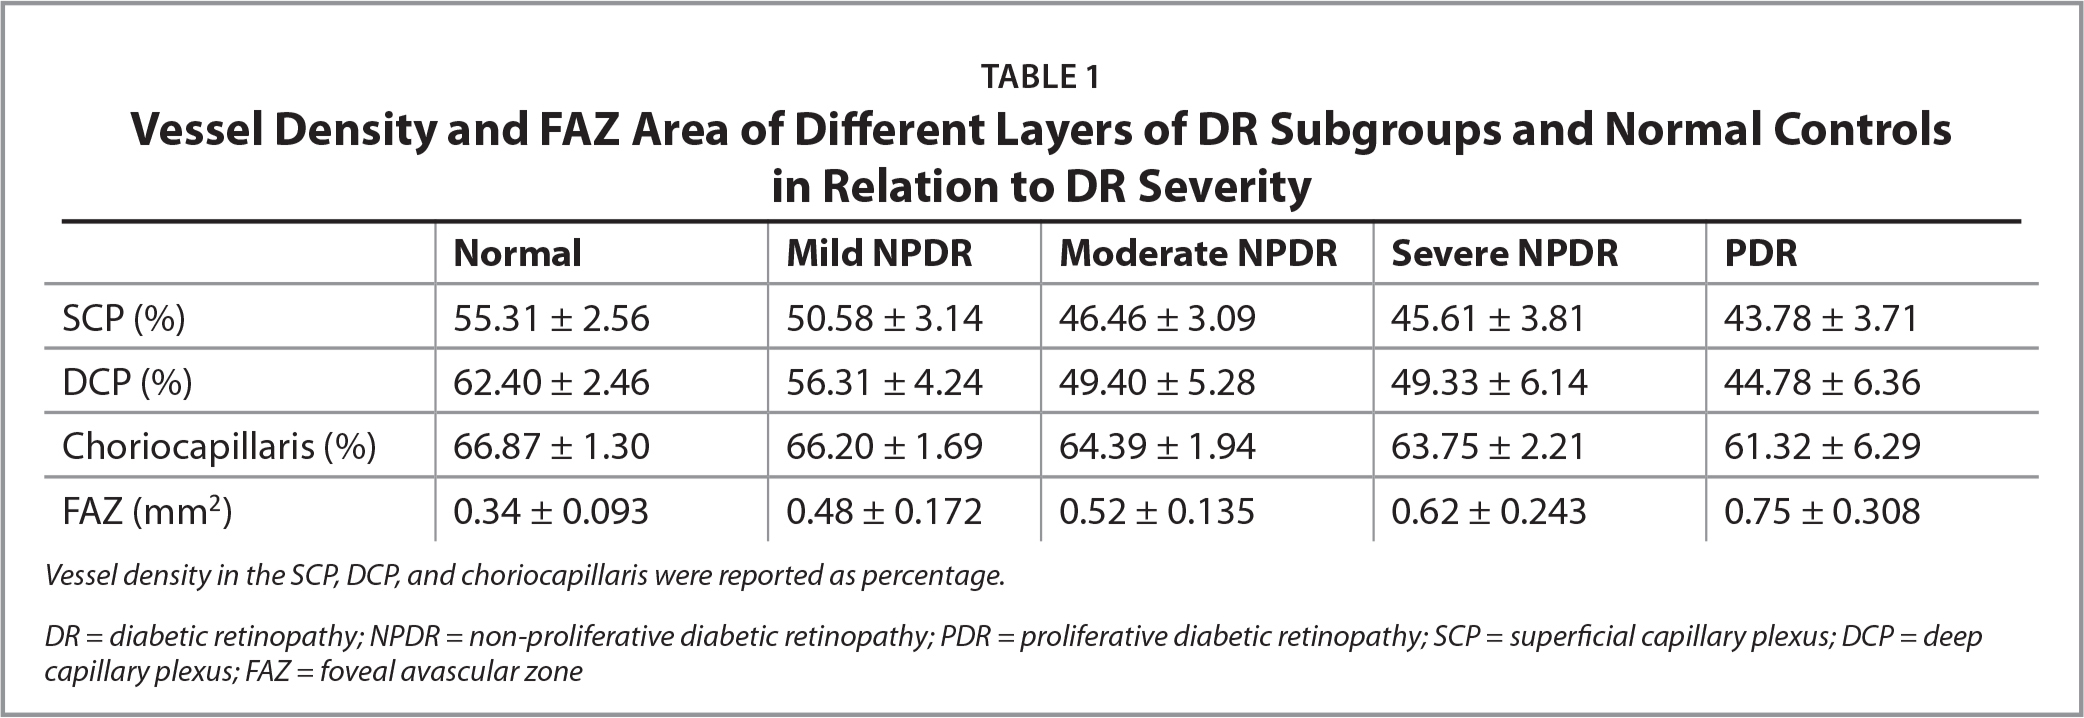 Vessel Density and FAZ Area of Different Layers of DR Subgroups and Normal Controlsin Relation to DR Severity